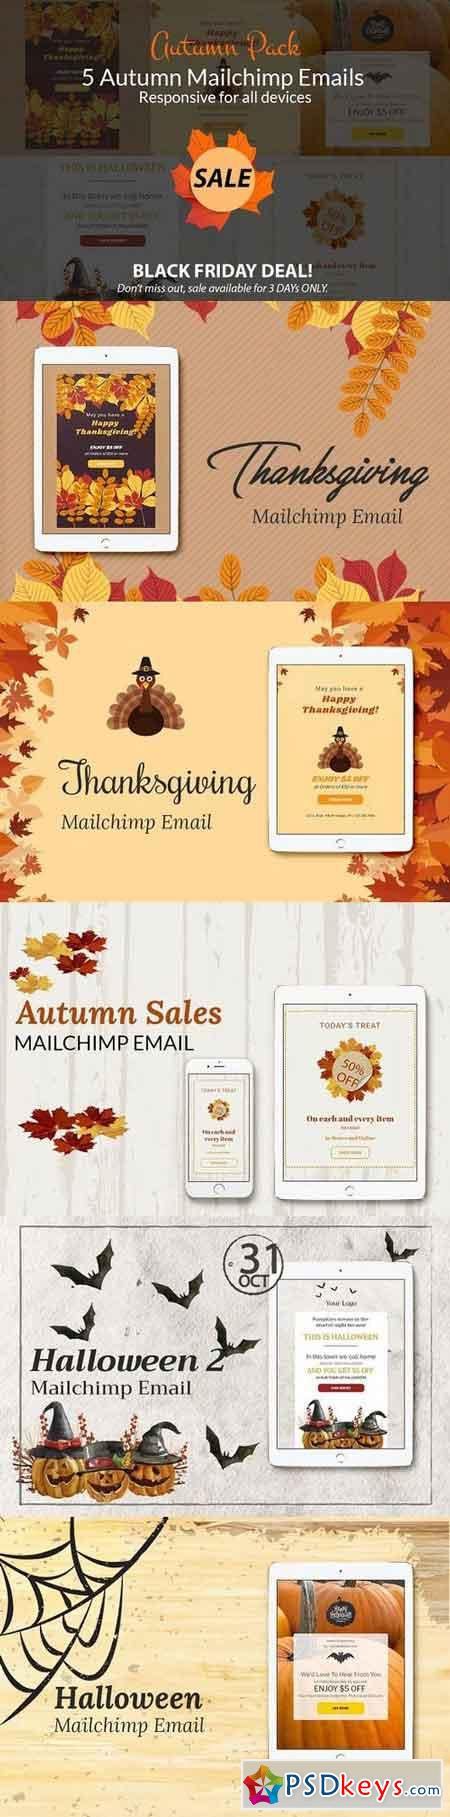 mailchimp calendar template - autumn sales mailchimp emails 1070716 free download